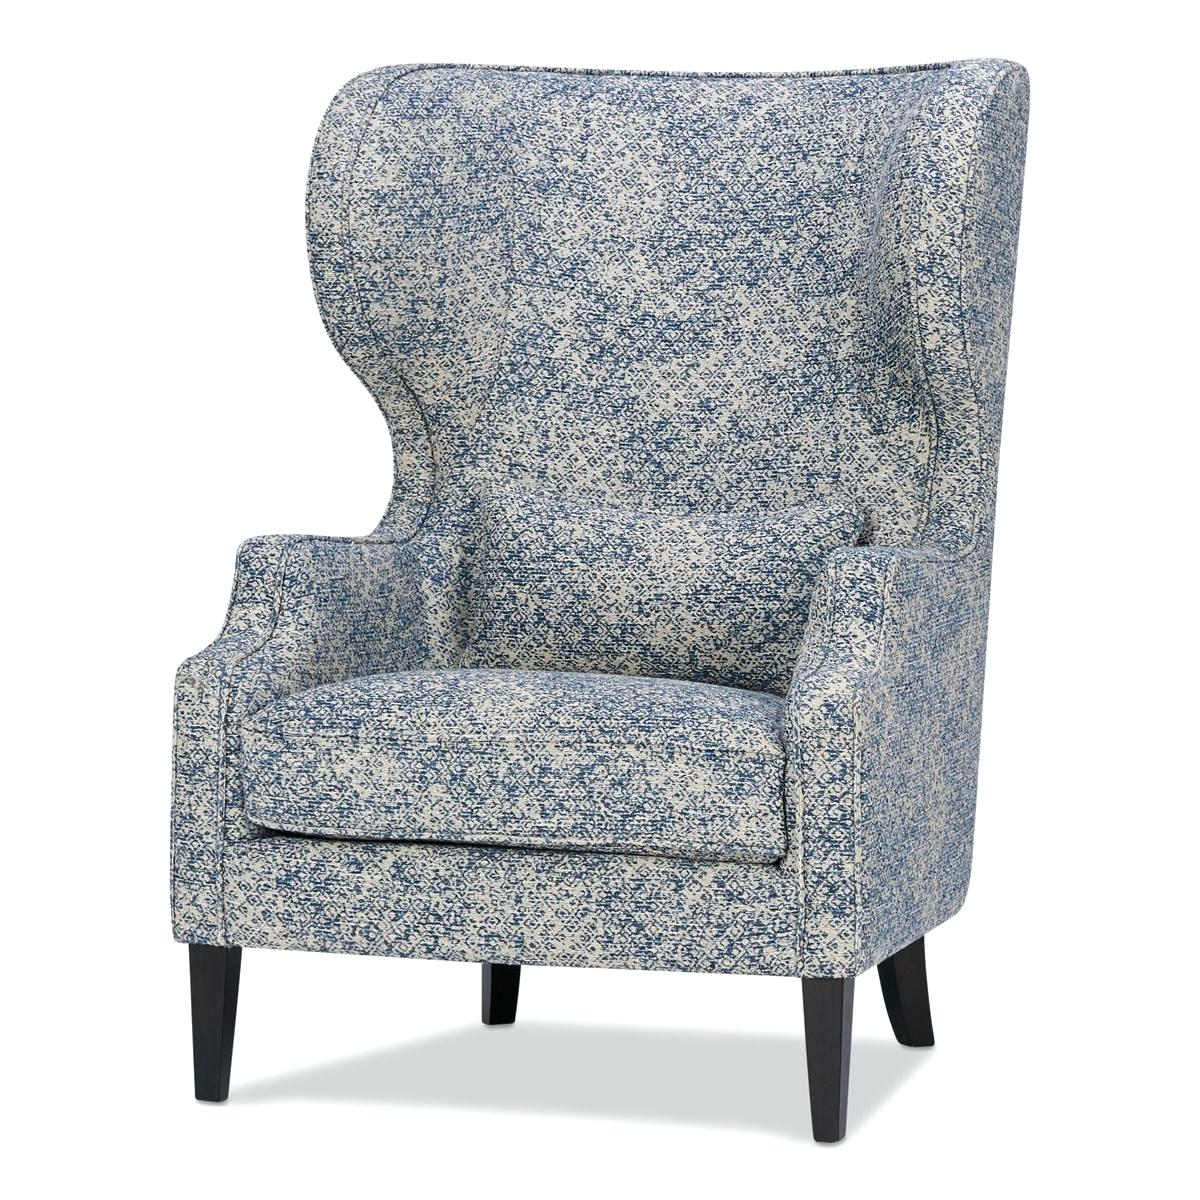 accent chairs toronto ontario available king street occasional armchair blue furniture uae white bedside table backyard shade structures west elm mini desk pottery barn dining